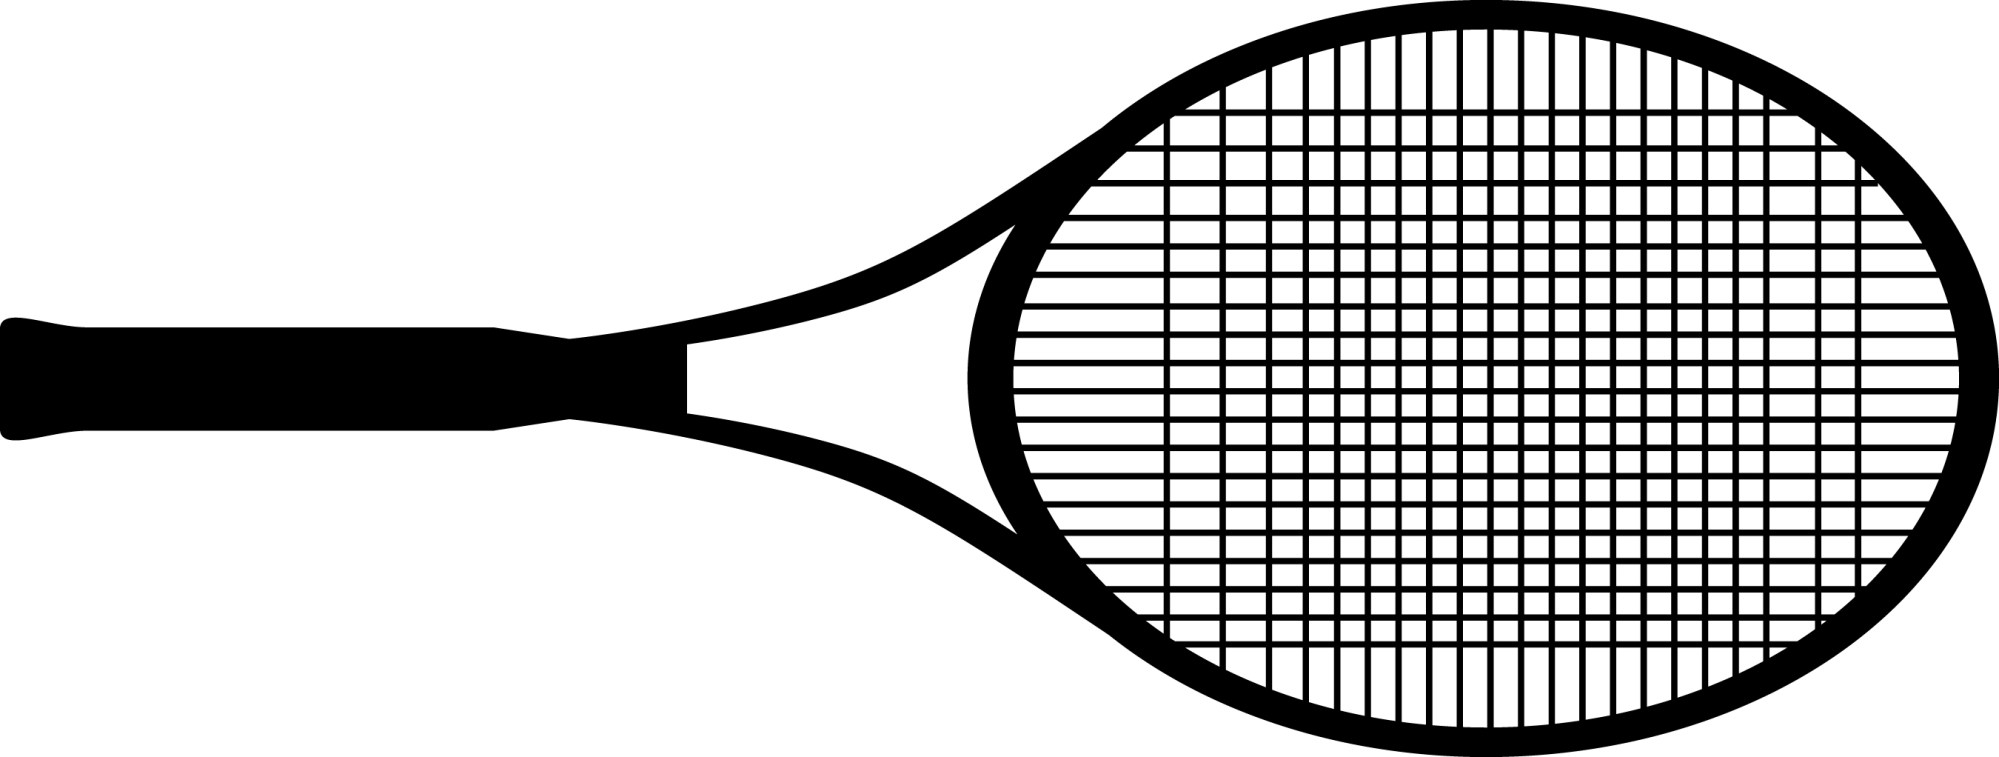 hight resolution of racket clipart lawn tennis cilpart merry recommendations racquet svg library stock